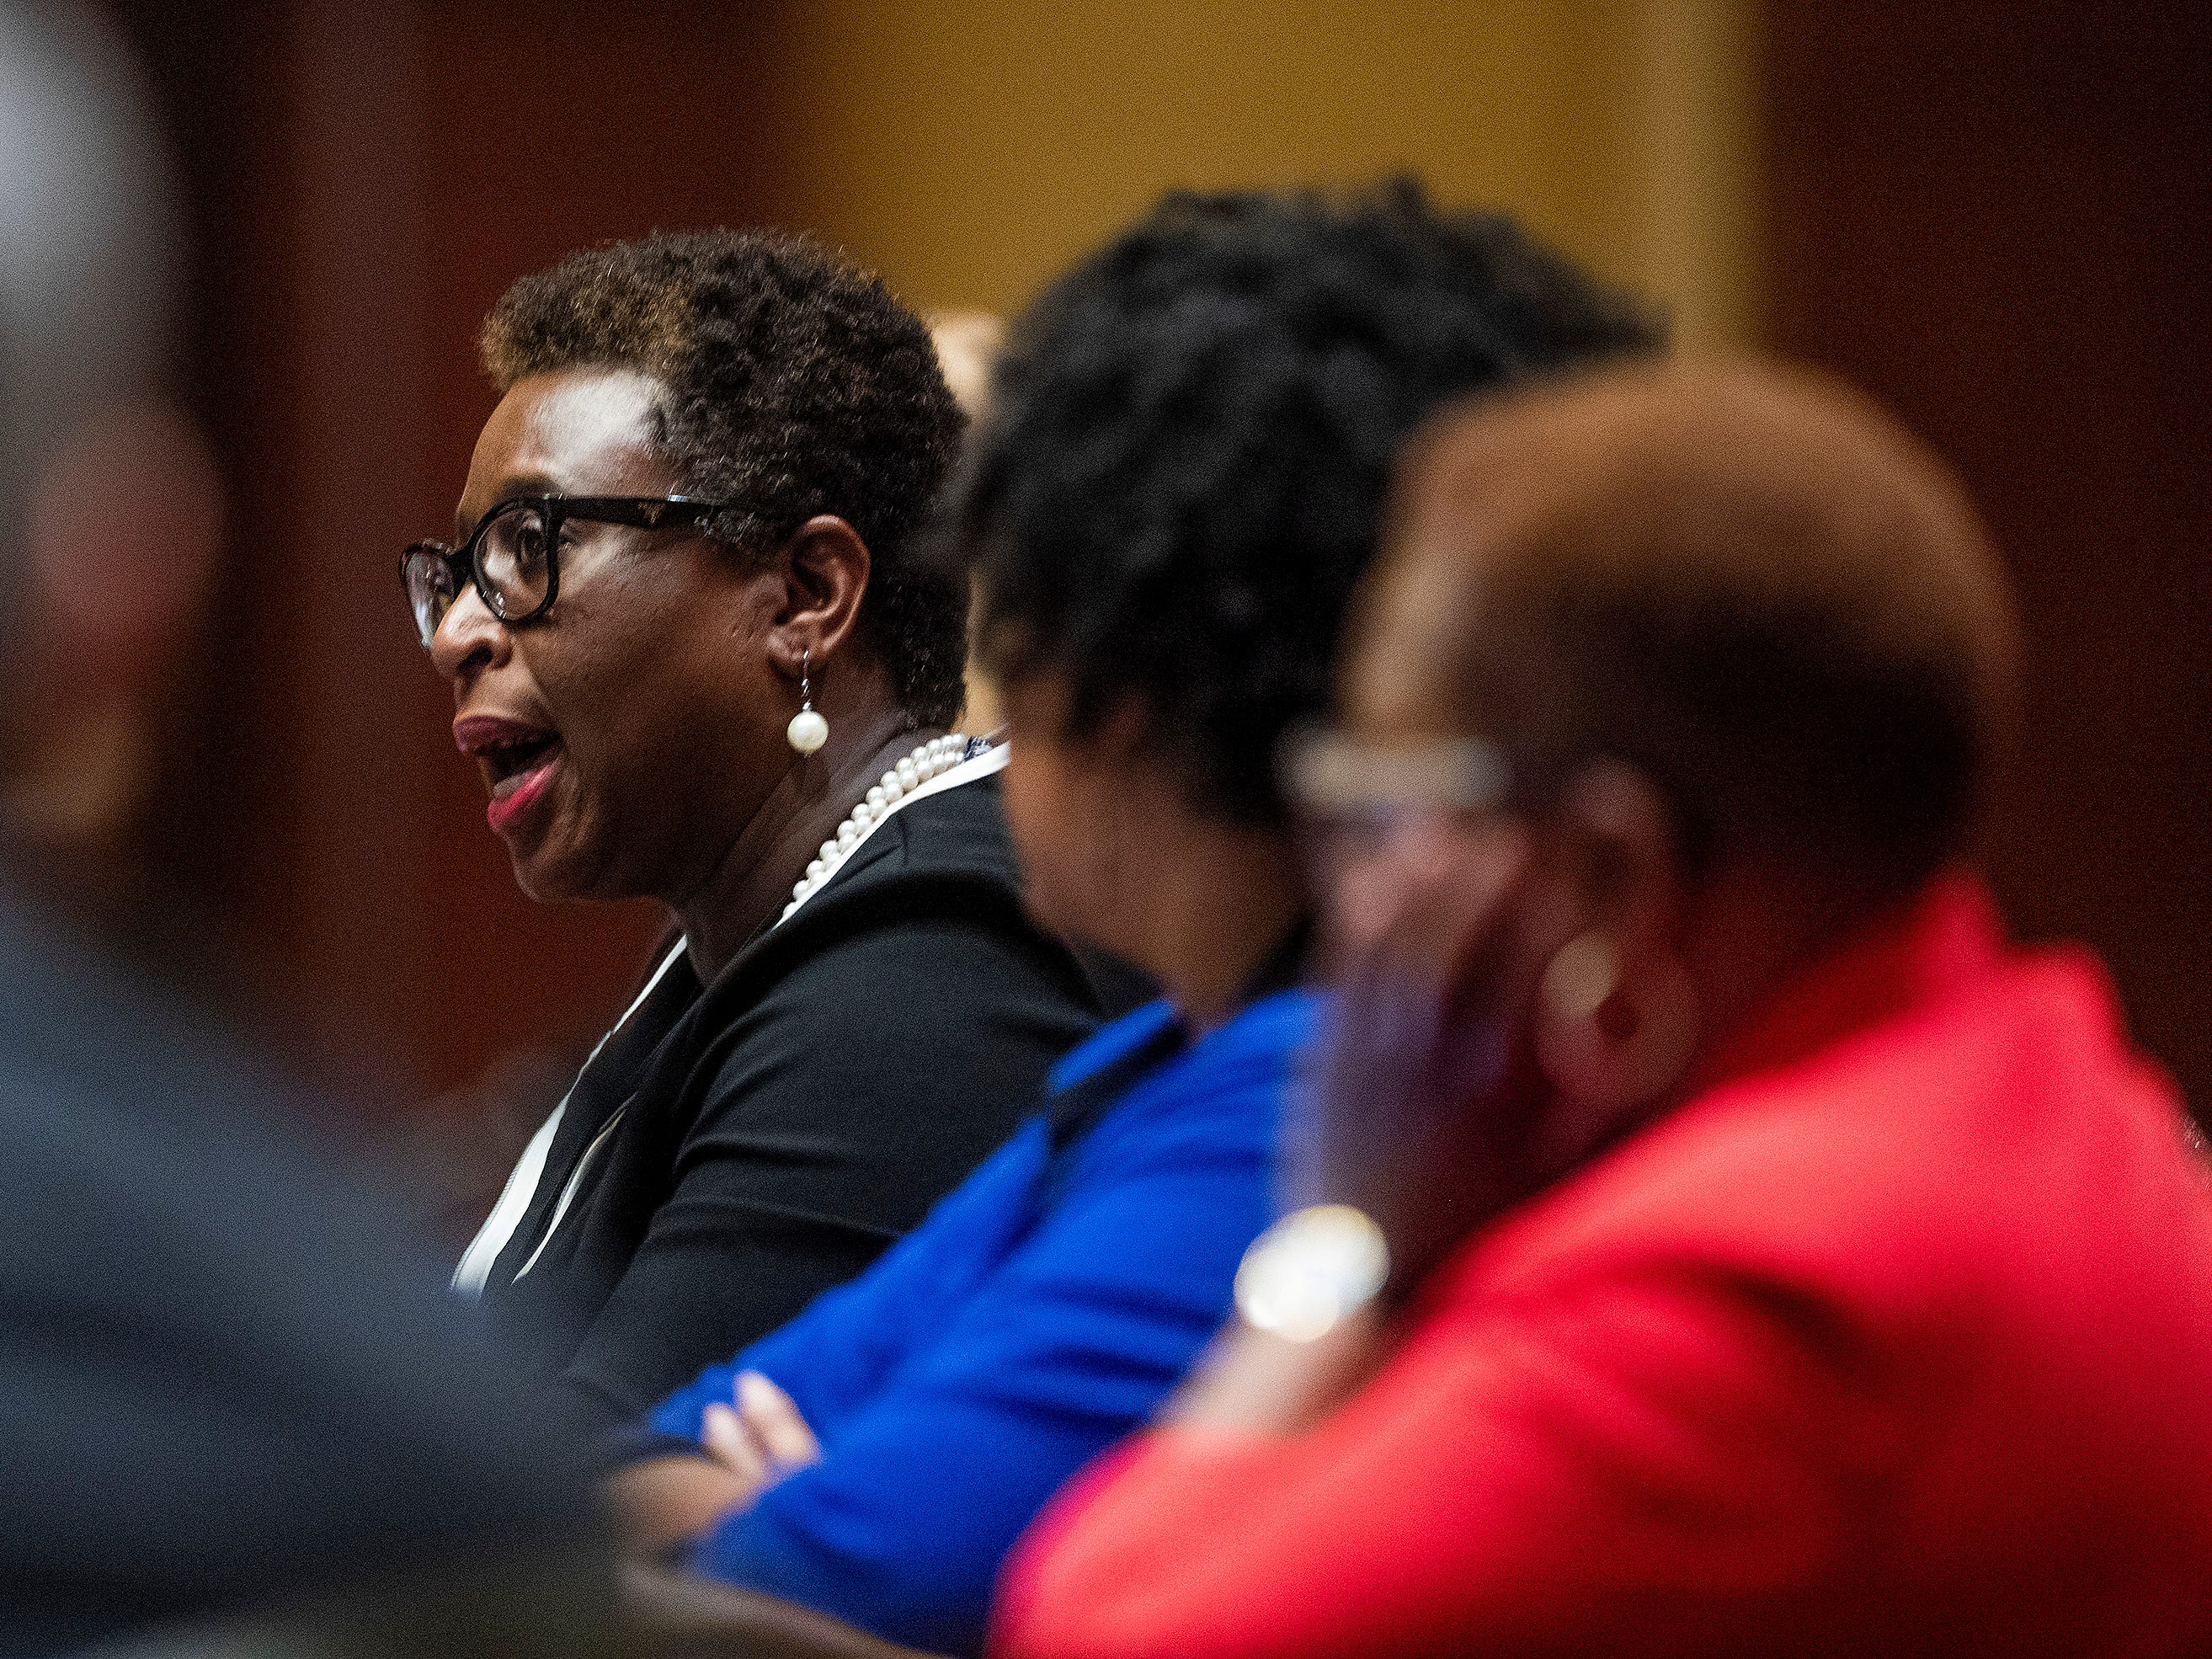 Mayor Yvonne Spicer of Framingham, Ma., speaks during a summit of the U.S. Conference of Mayors in Montgomery, Ala., on Wednesday November 14, 2018 to address extremism, bigotry and divisiveness.